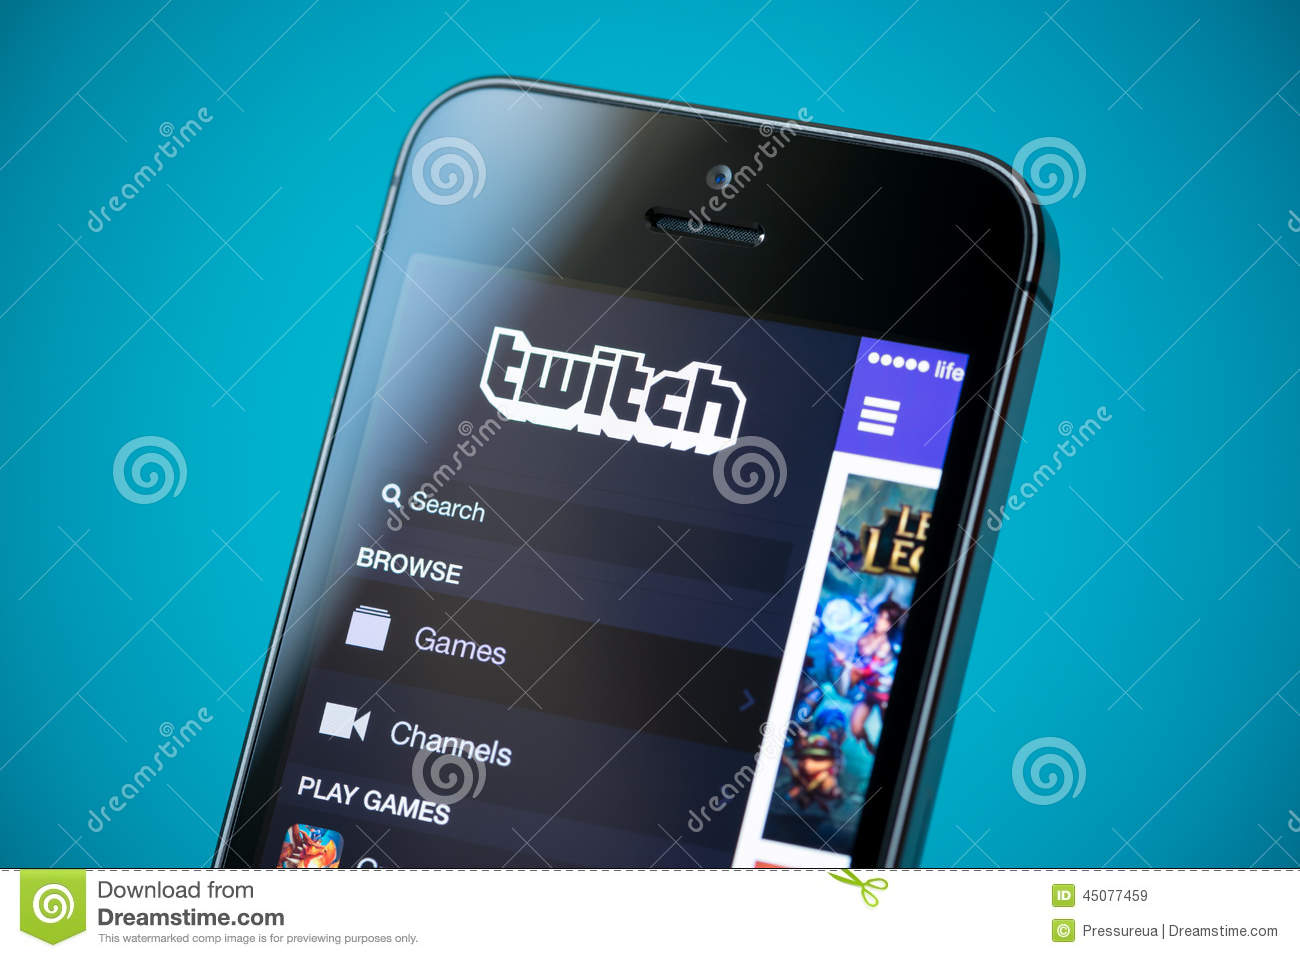 how to download twitch videos on iphone